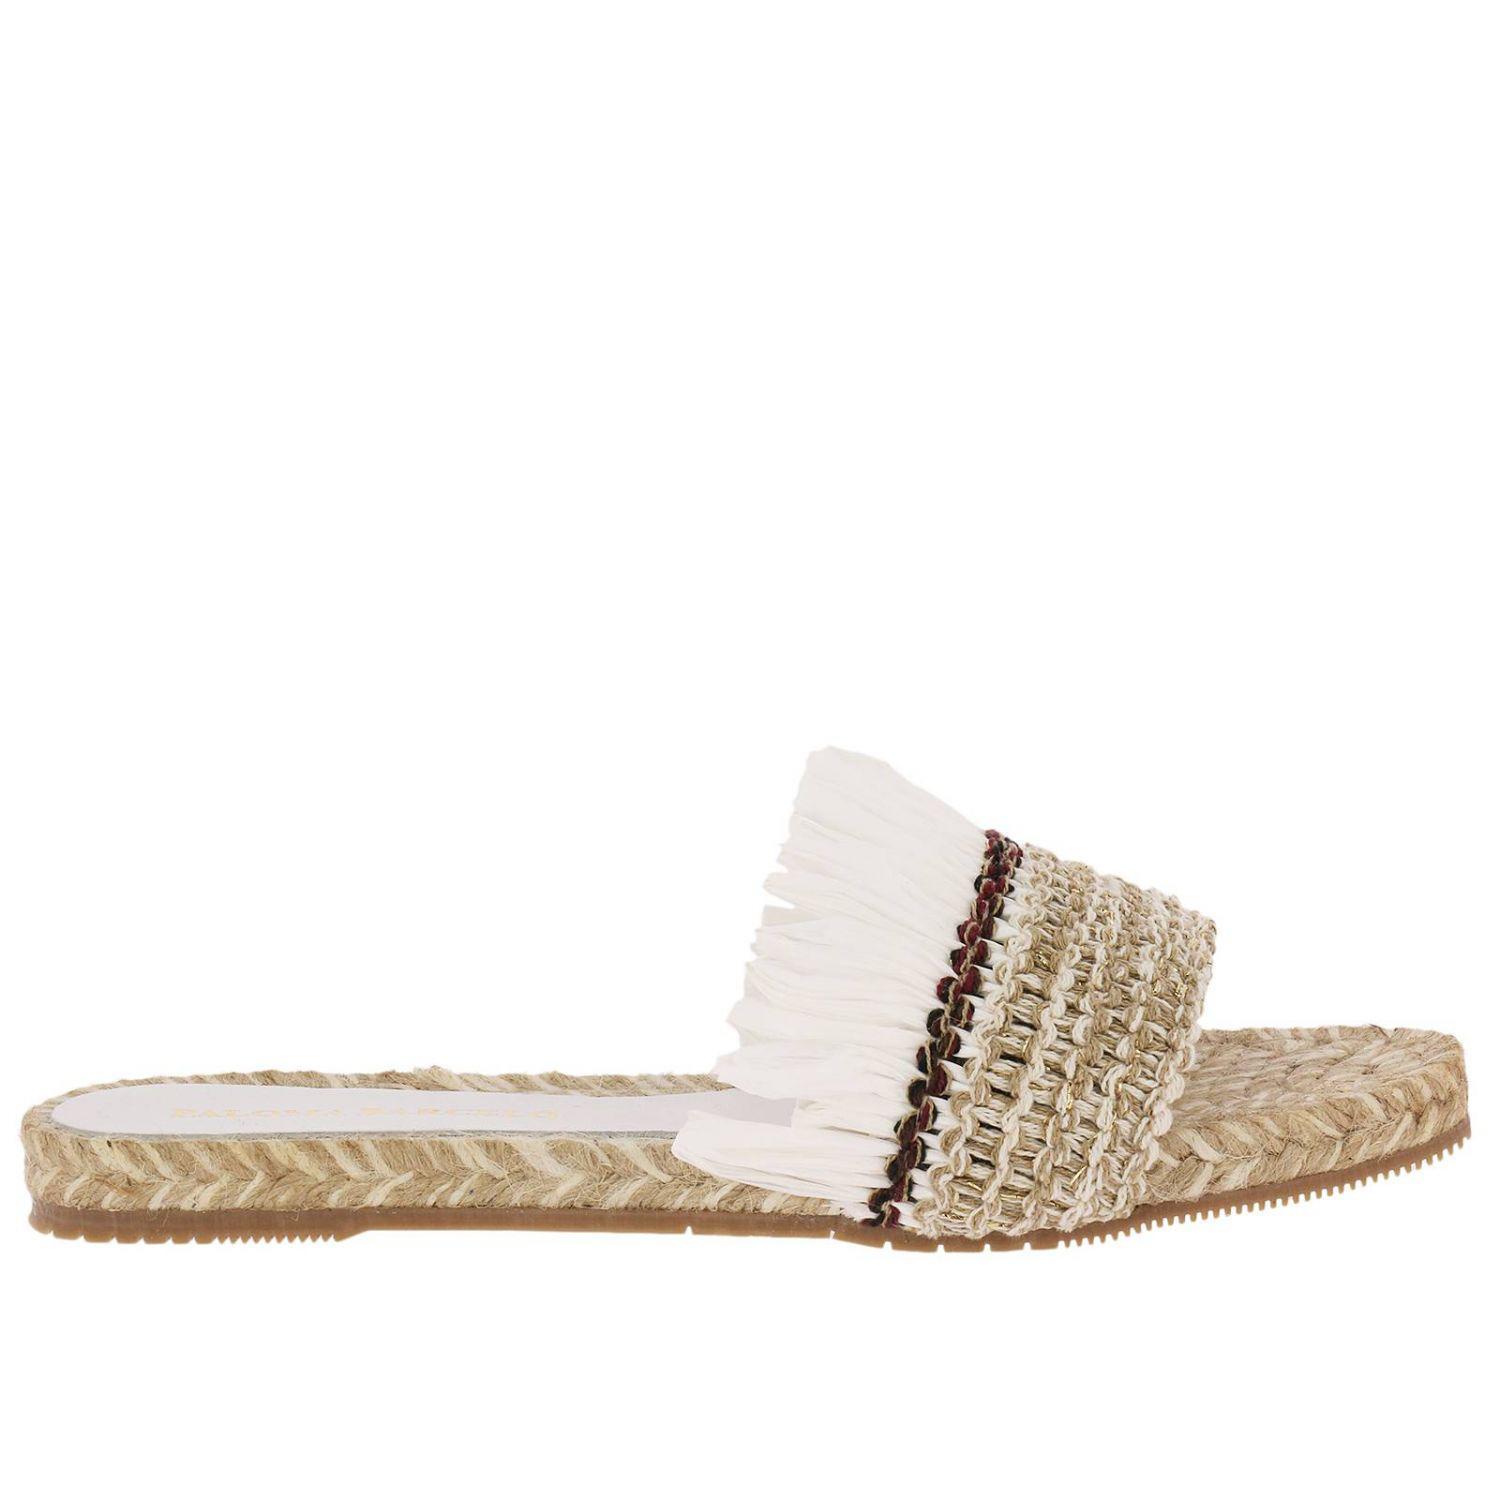 Sale Buy Cheap Low Shipping Paloma Barceló Flat Sandals Shoes Women Buy Cheap Limited Edition Sale Affordable Clearance Great Deals BizX5